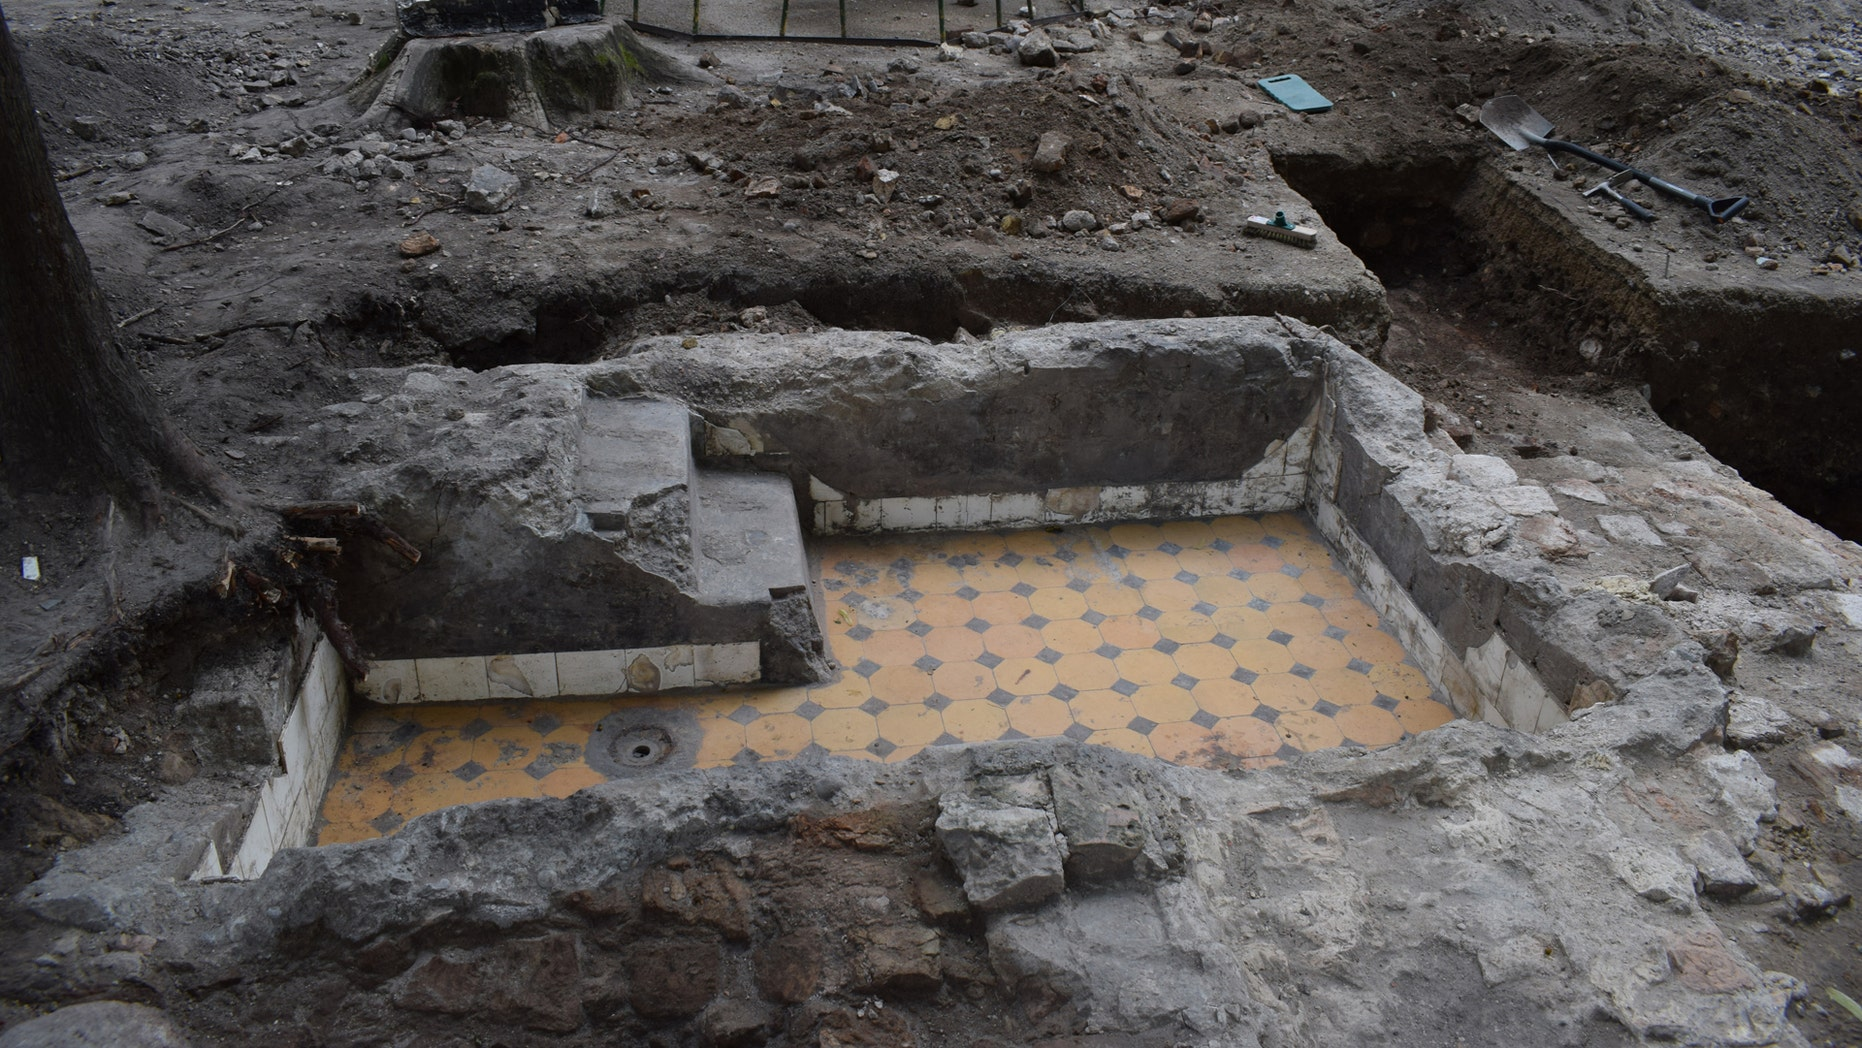 Holocaust discovery: Ritual baths uncovered in synagogue